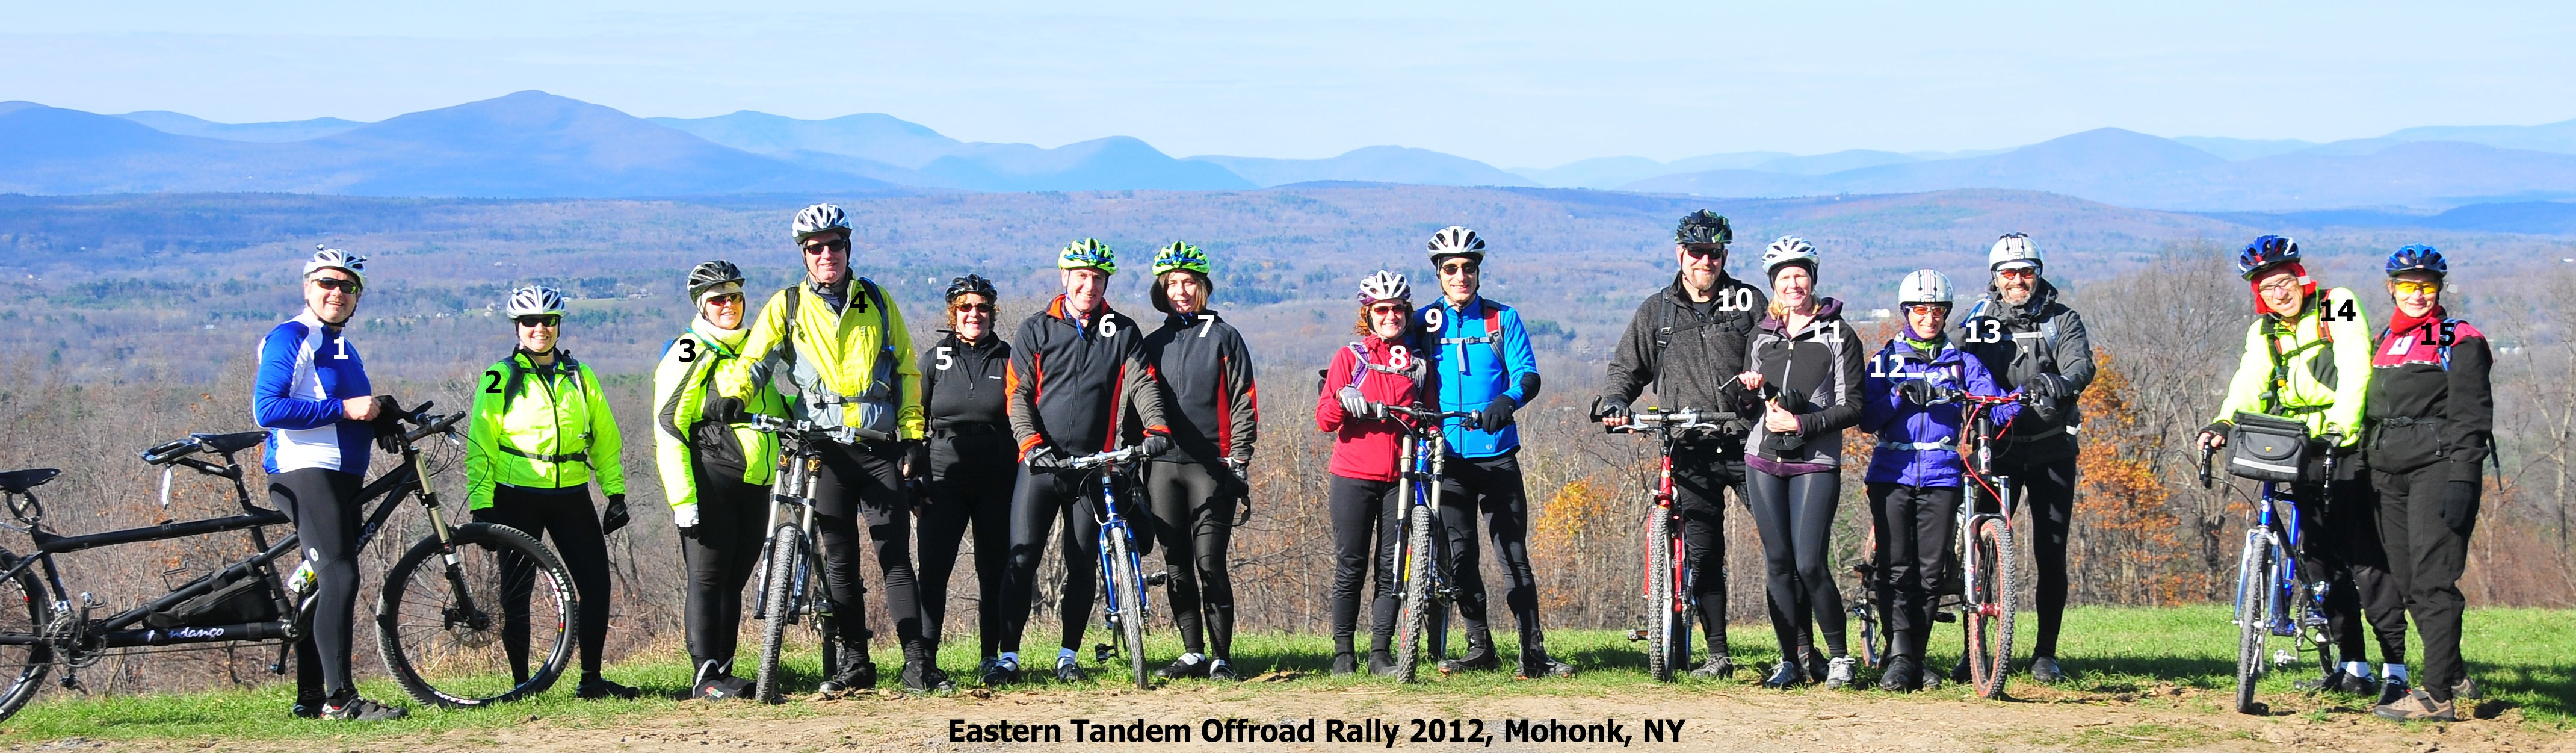 Eastern Tandem Offroad Rally 2012, Spring Farm Overlook, Mohonk Preserve, NY